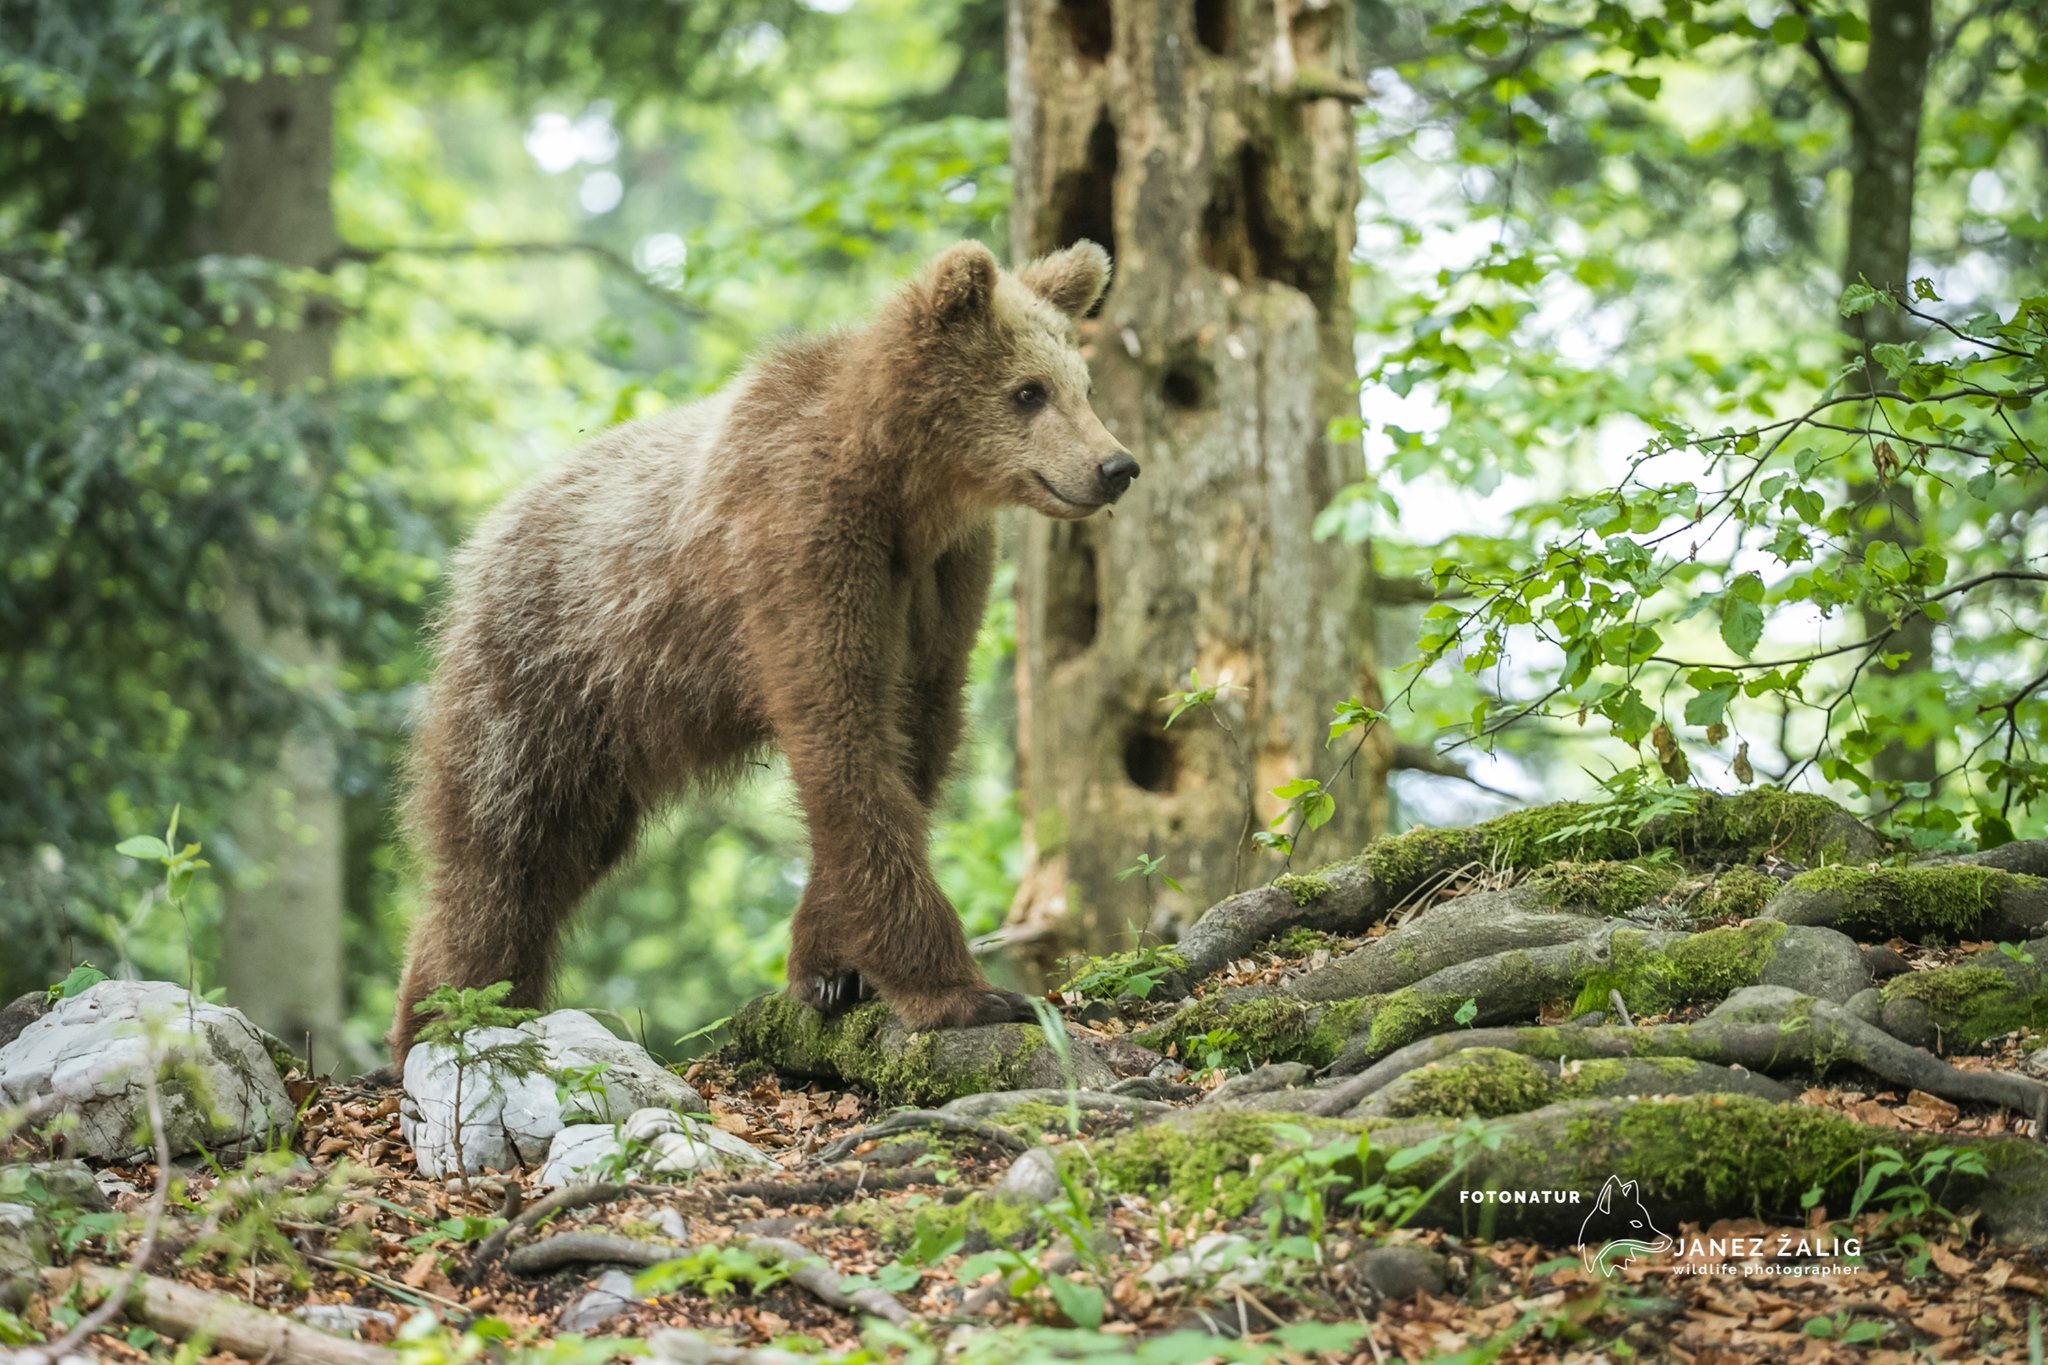 Brown Bear photography tour in Slovenia